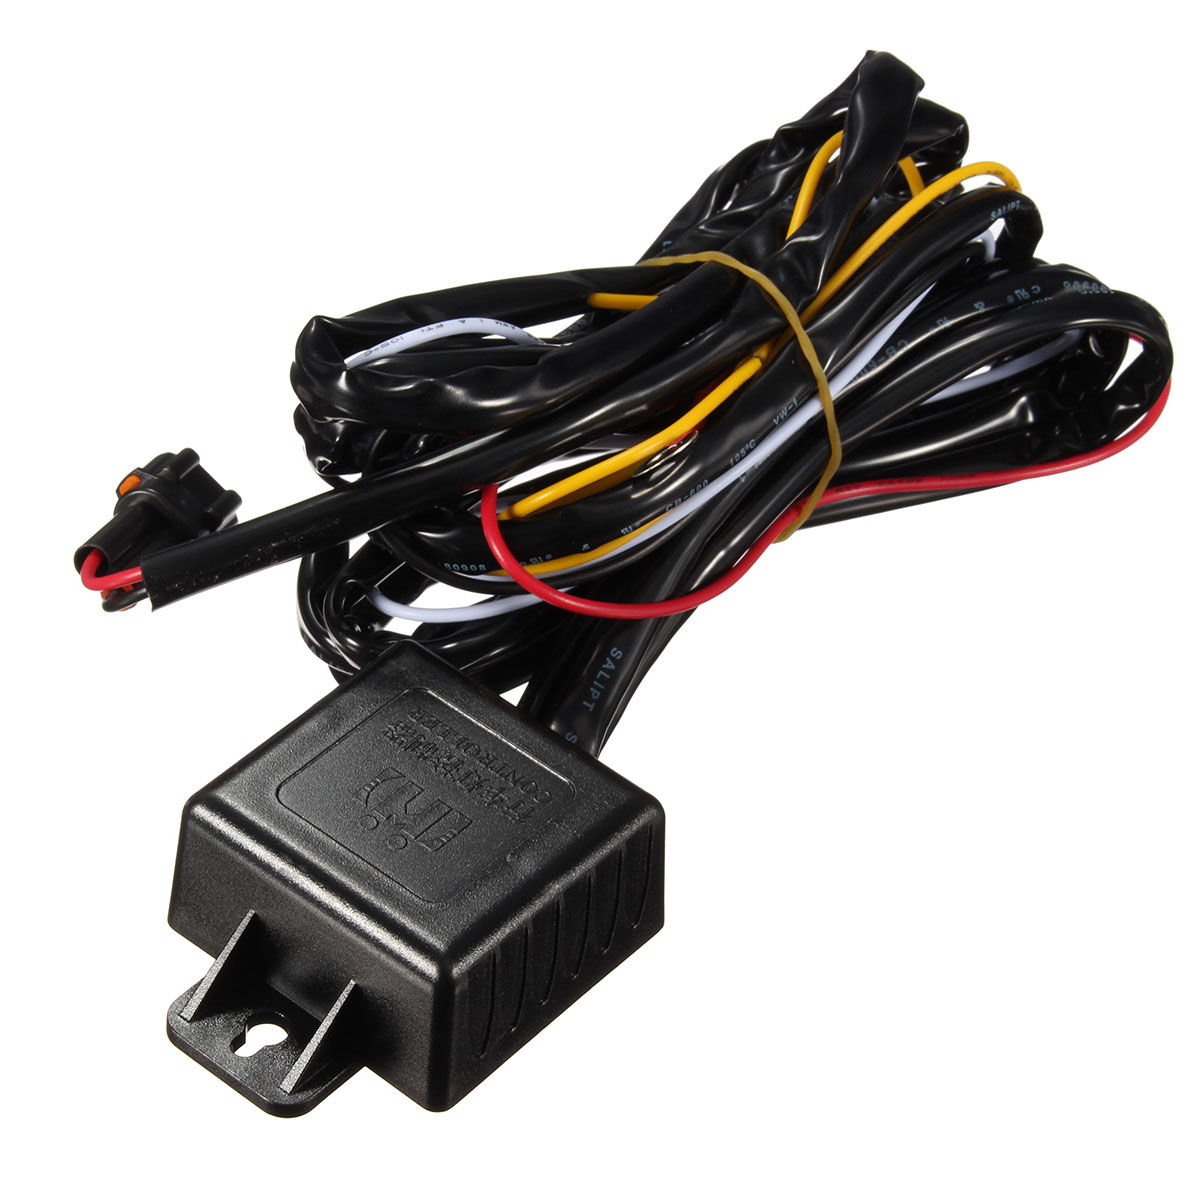 Western Plow Wiring Dodge V 10 Pin Auto Electrical Diagram Fp204824av Switch On Off Daytime Running Lights For Relays Get